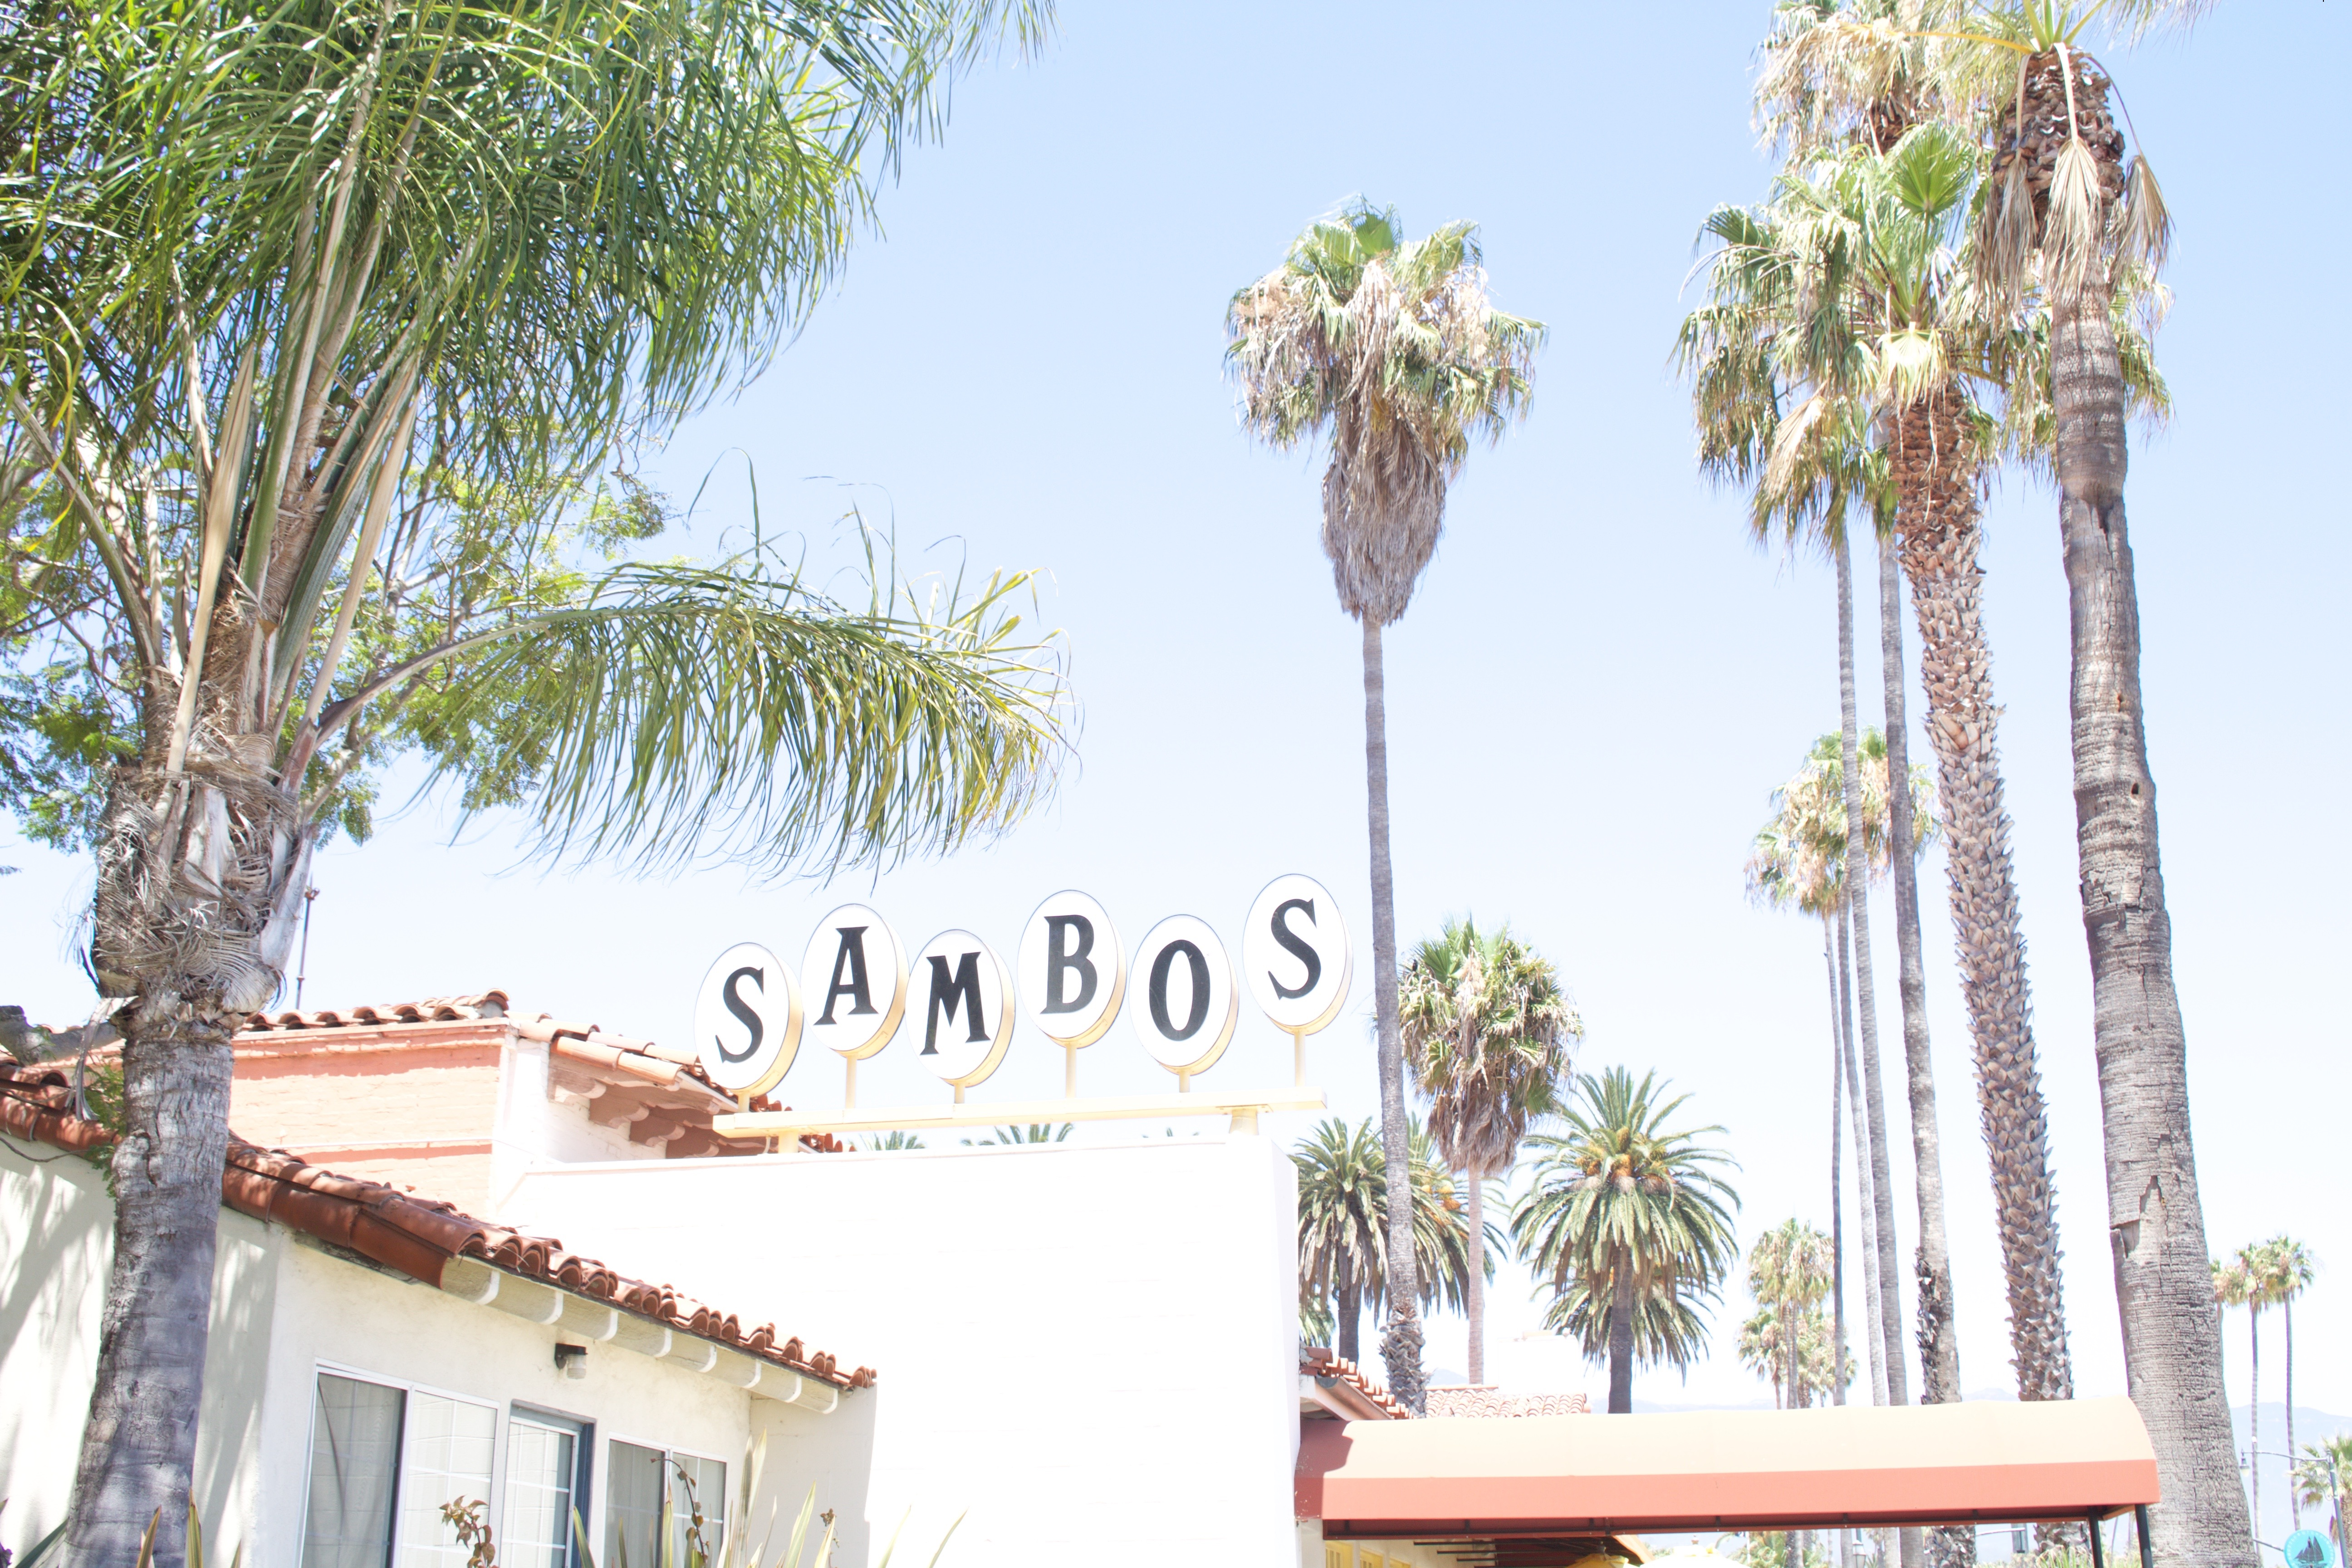 Sambos, Santa Barbara, California - My Styled Life